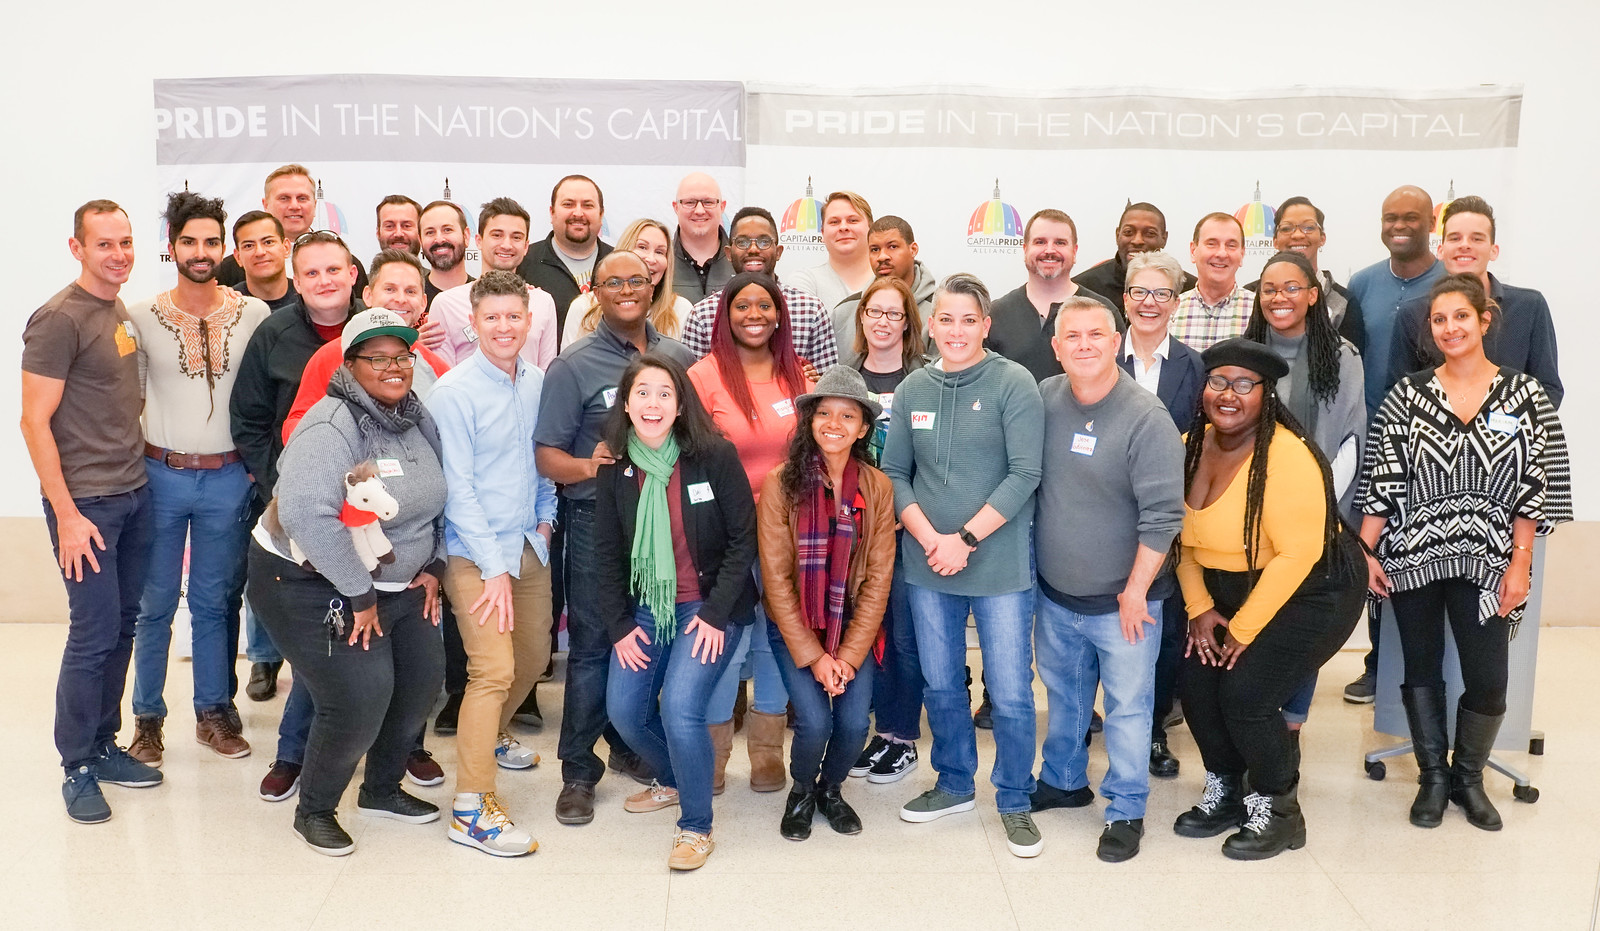 2019.11.16 Capital Pride Alliance Retreat, Washington, DC USA  320 94103